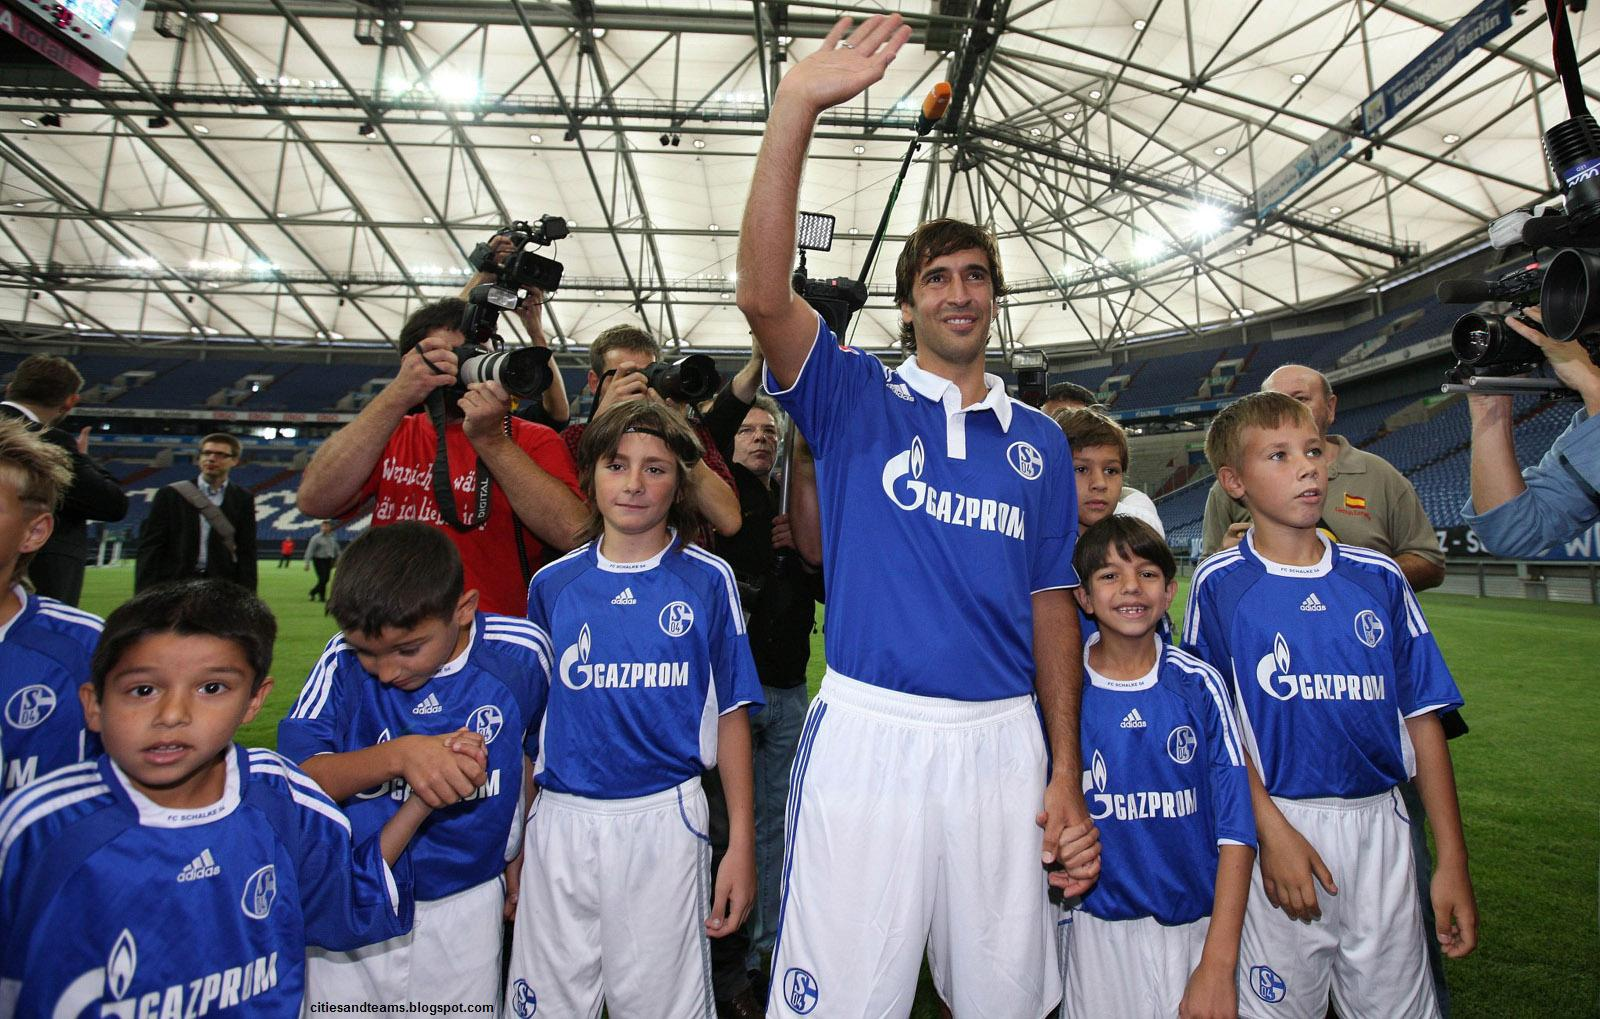 http://4.bp.blogspot.com/-GTZsz5vR-Nw/T5U-RDyRvKI/AAAAAAAAGCI/XrA6ughhKu8/s1600/Raul_Gonzalez_With_Children_Schalke_04_Germany_German_Spanish_Wallpaper_Hd_Desktop_citiesandteams.blogspot.com.jpg